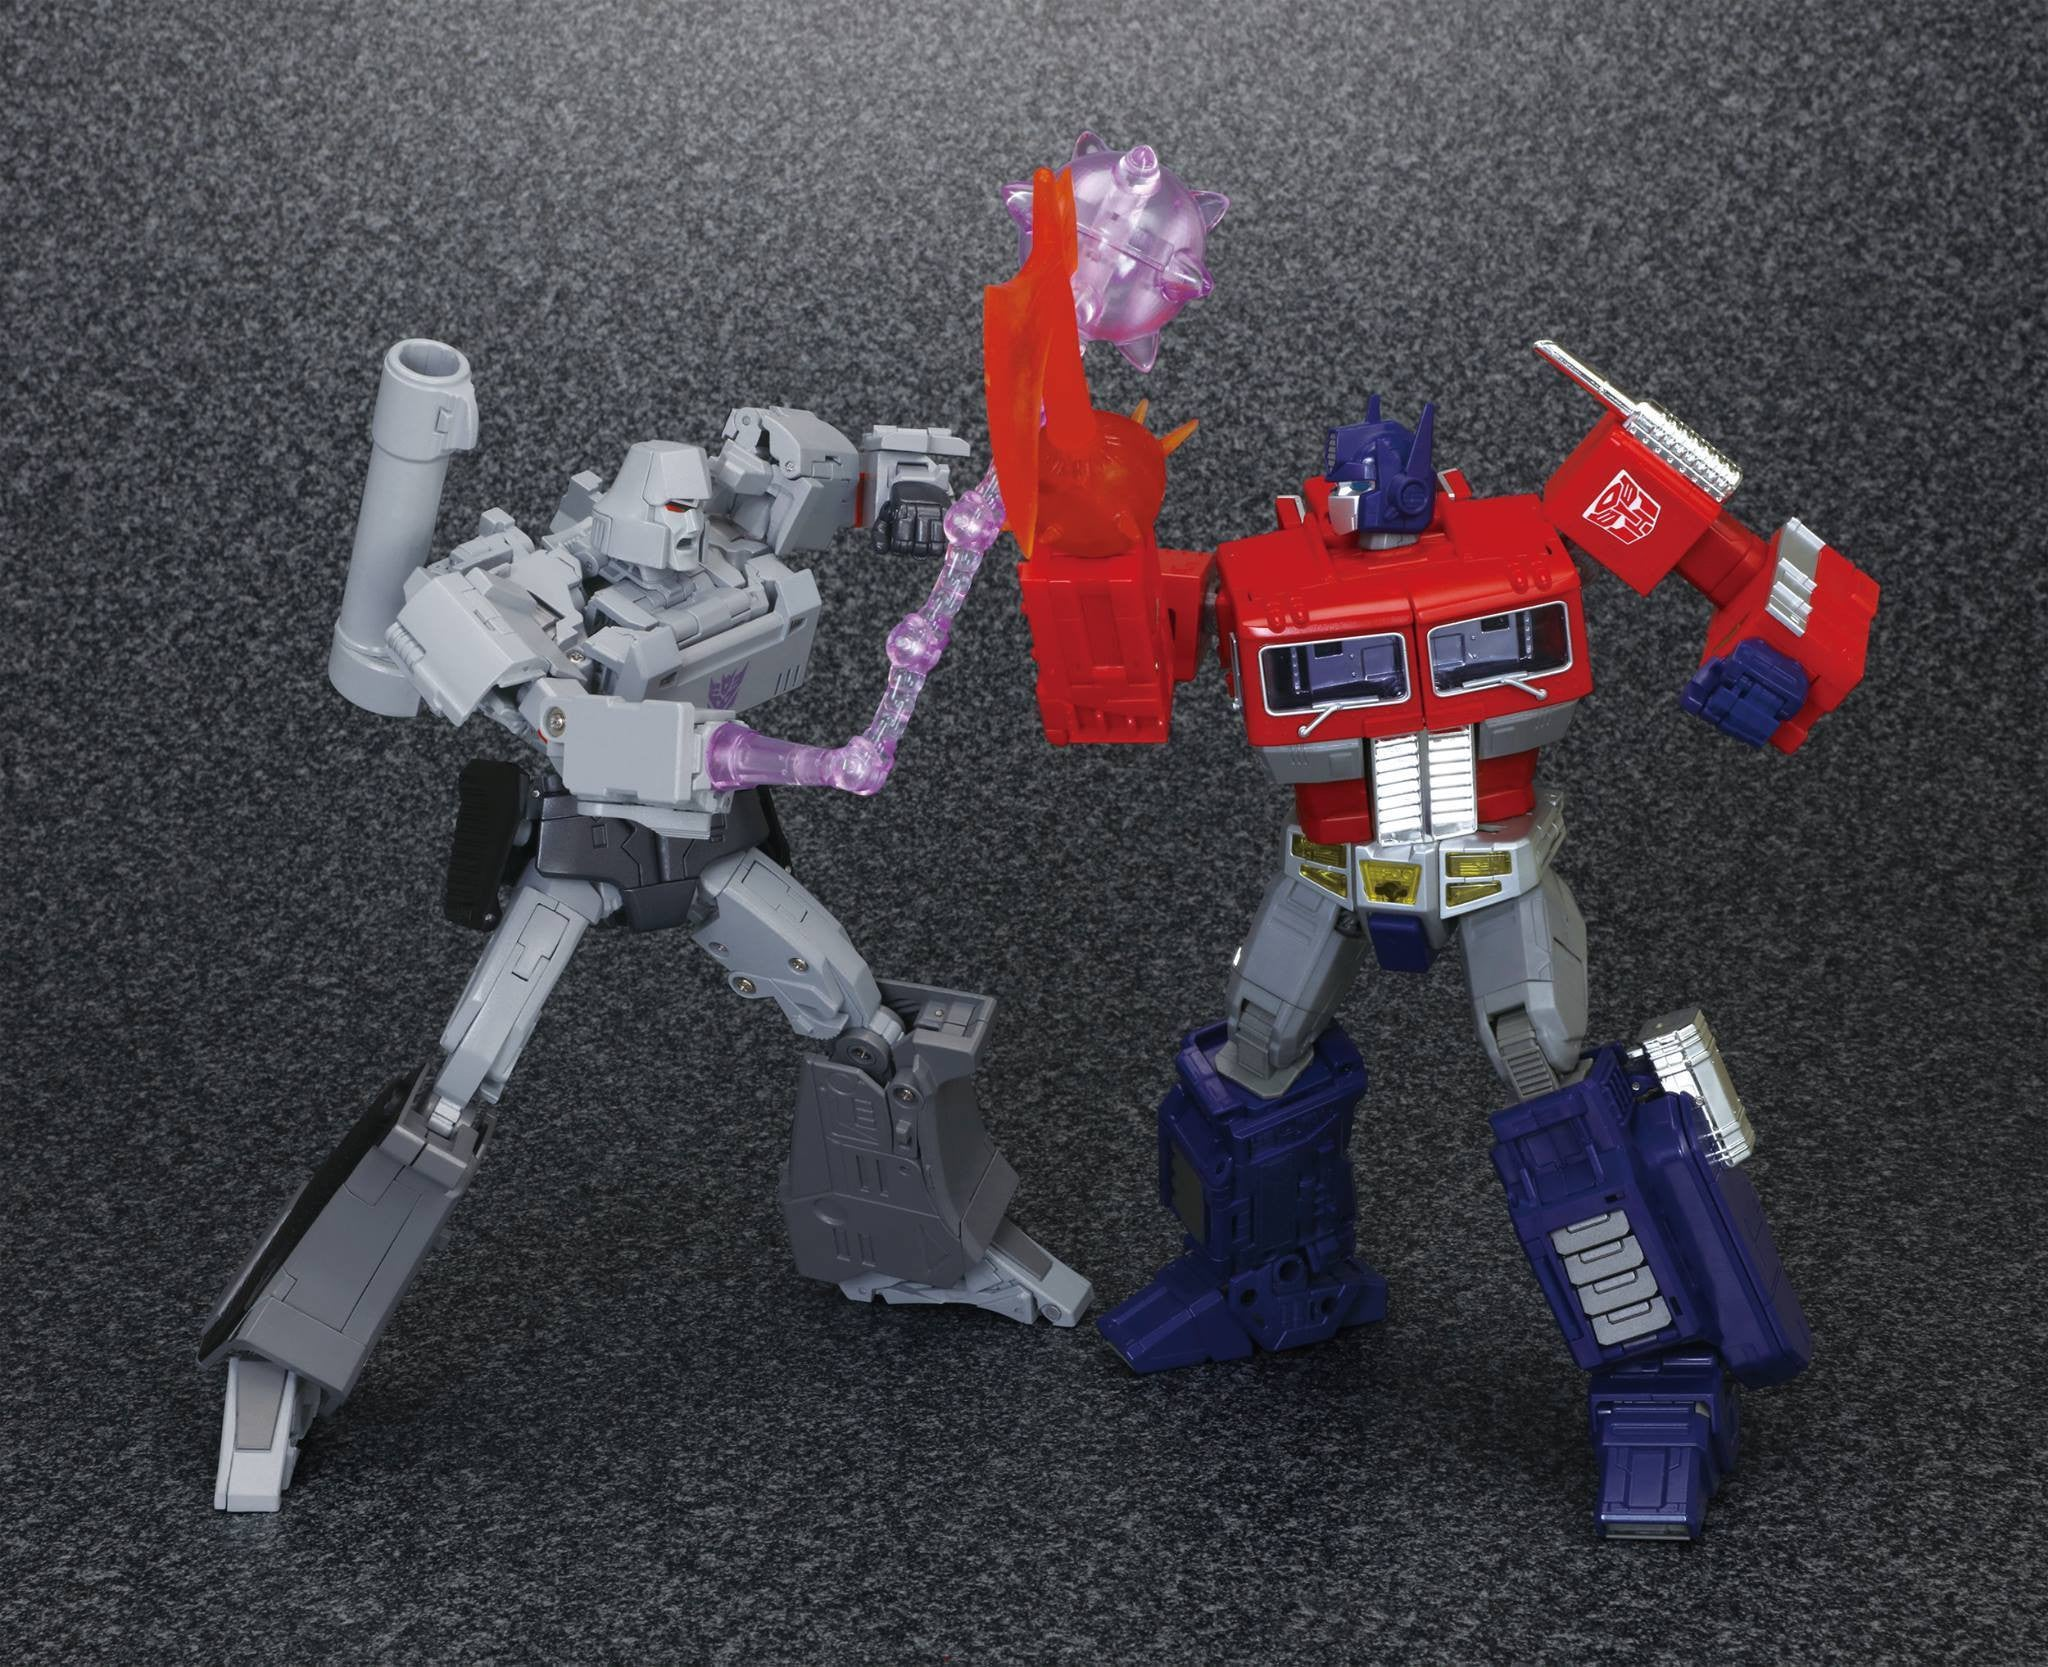 TakaraTomy - Transformers Masterpiece - MP-36 - Megatron - Marvelous Toys - 7